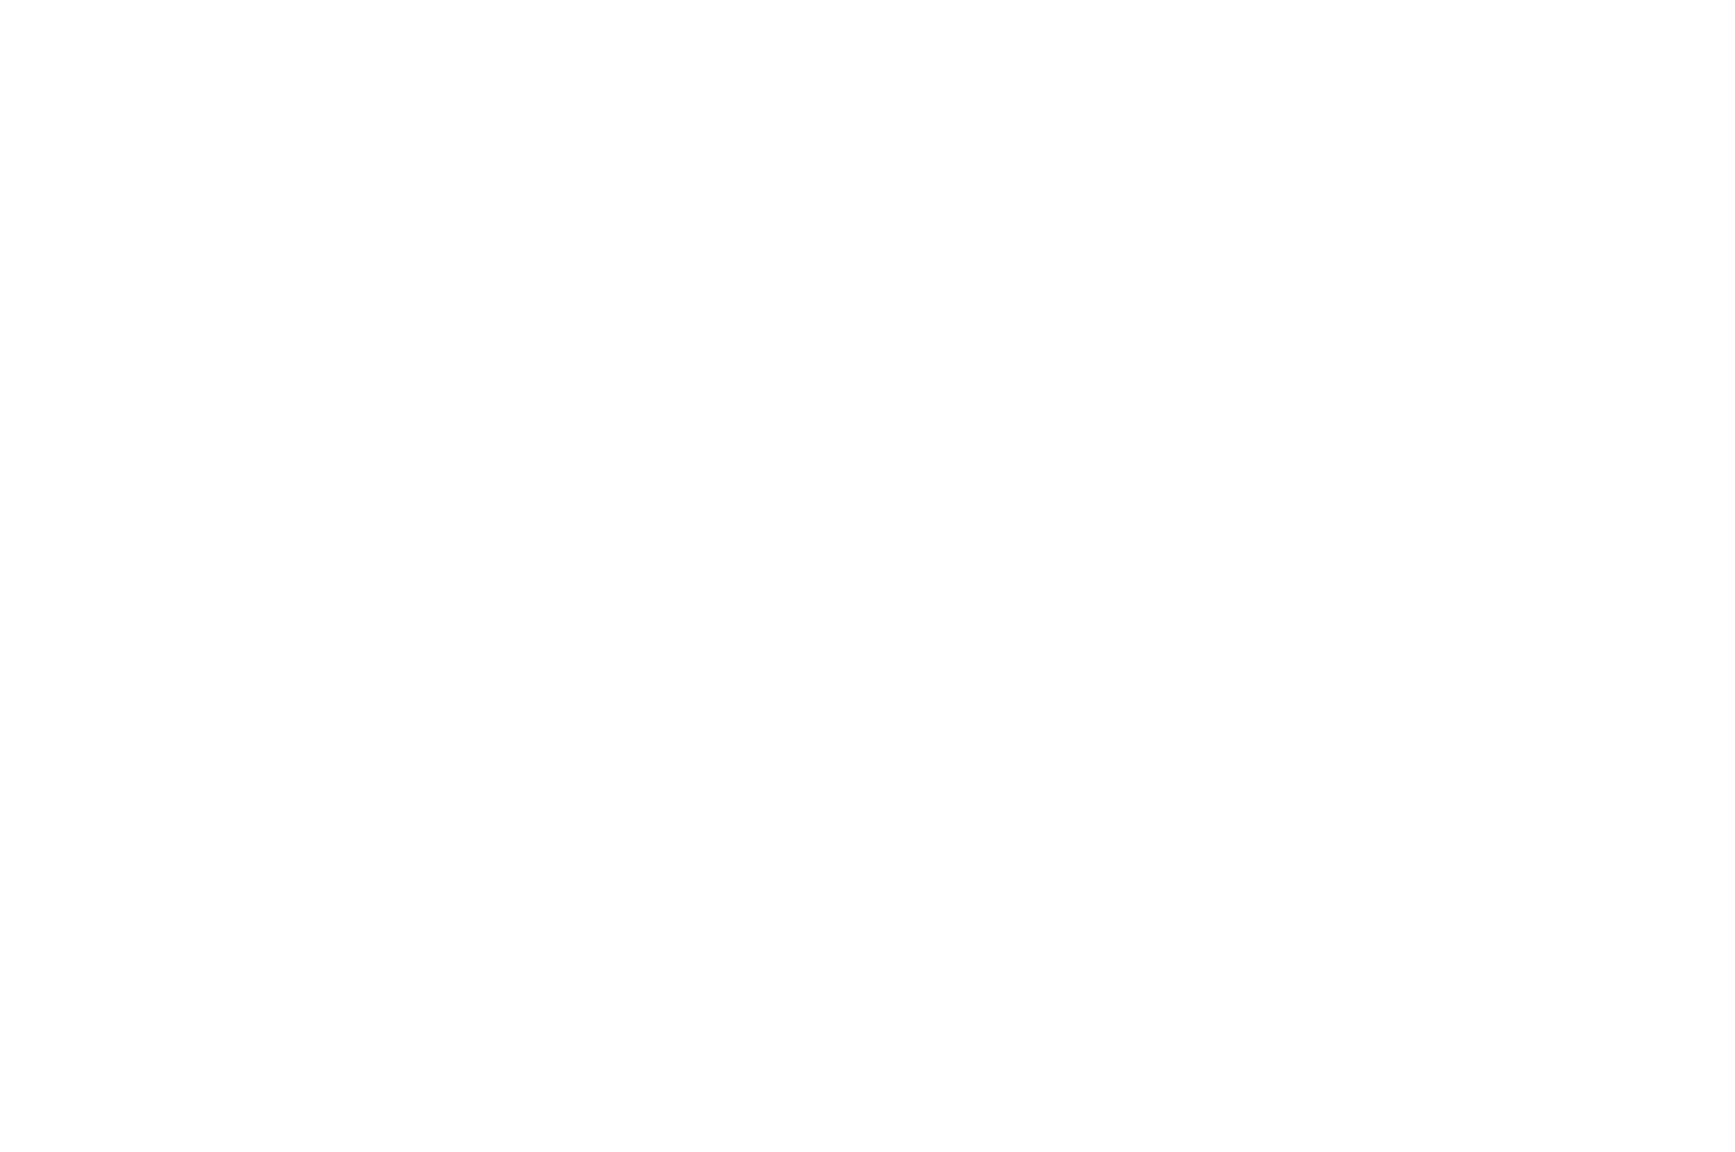 OFFICIAL SELECTION - Move Me Productions Belgium - Film Festival - 2018.png